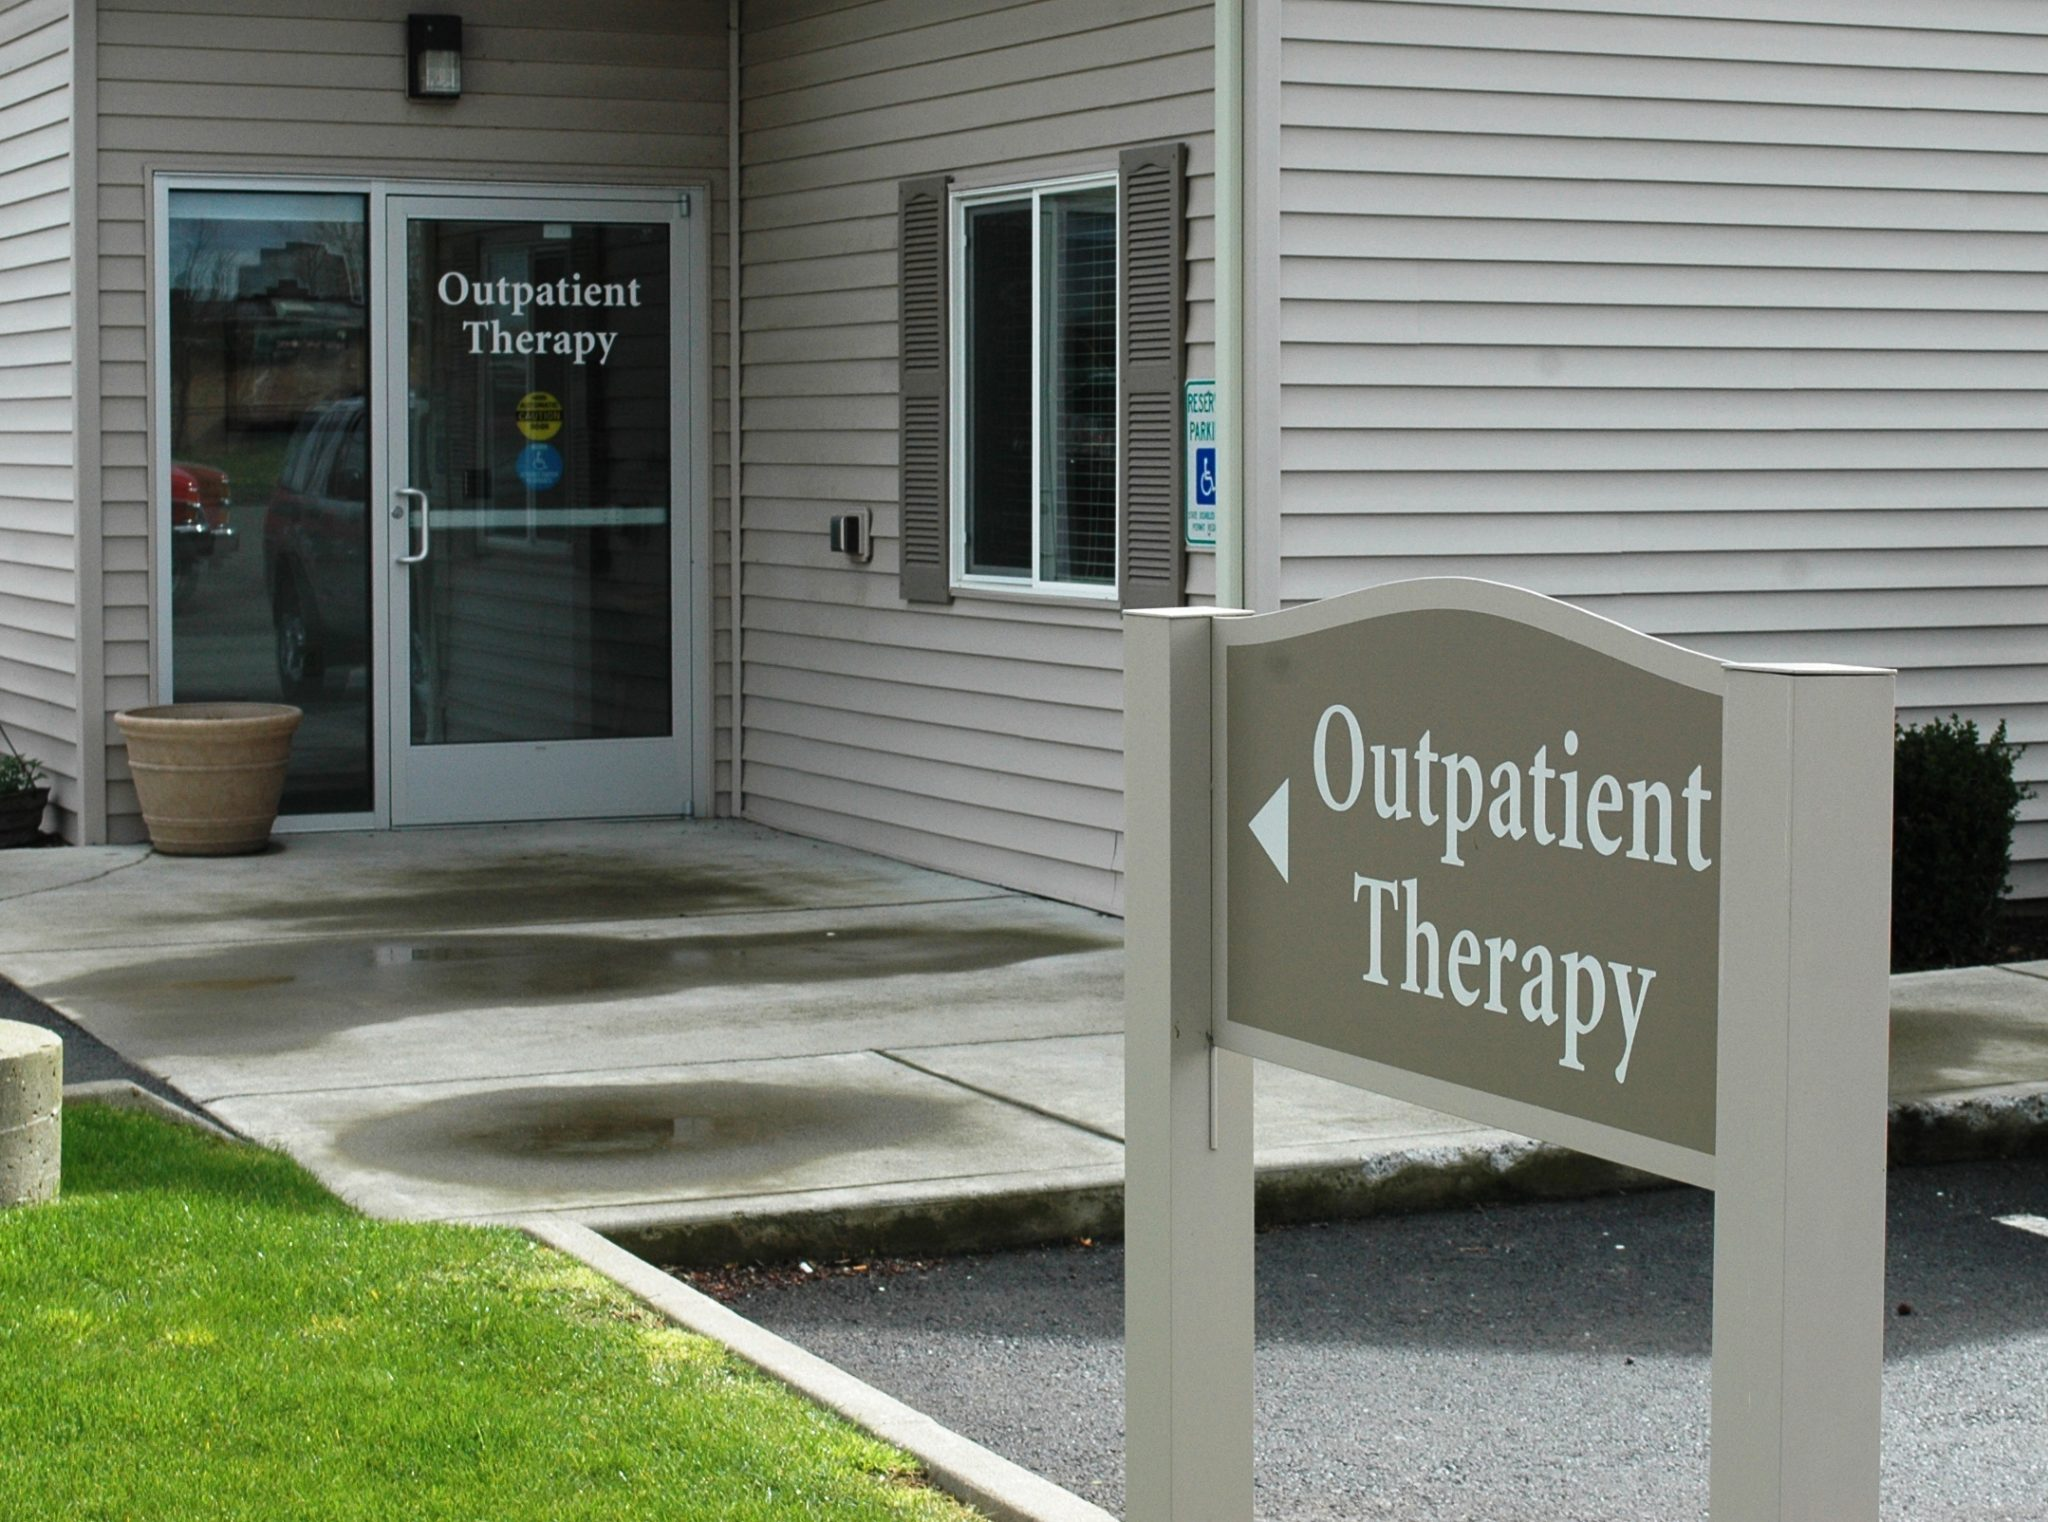 outpatient therapy entry cropped